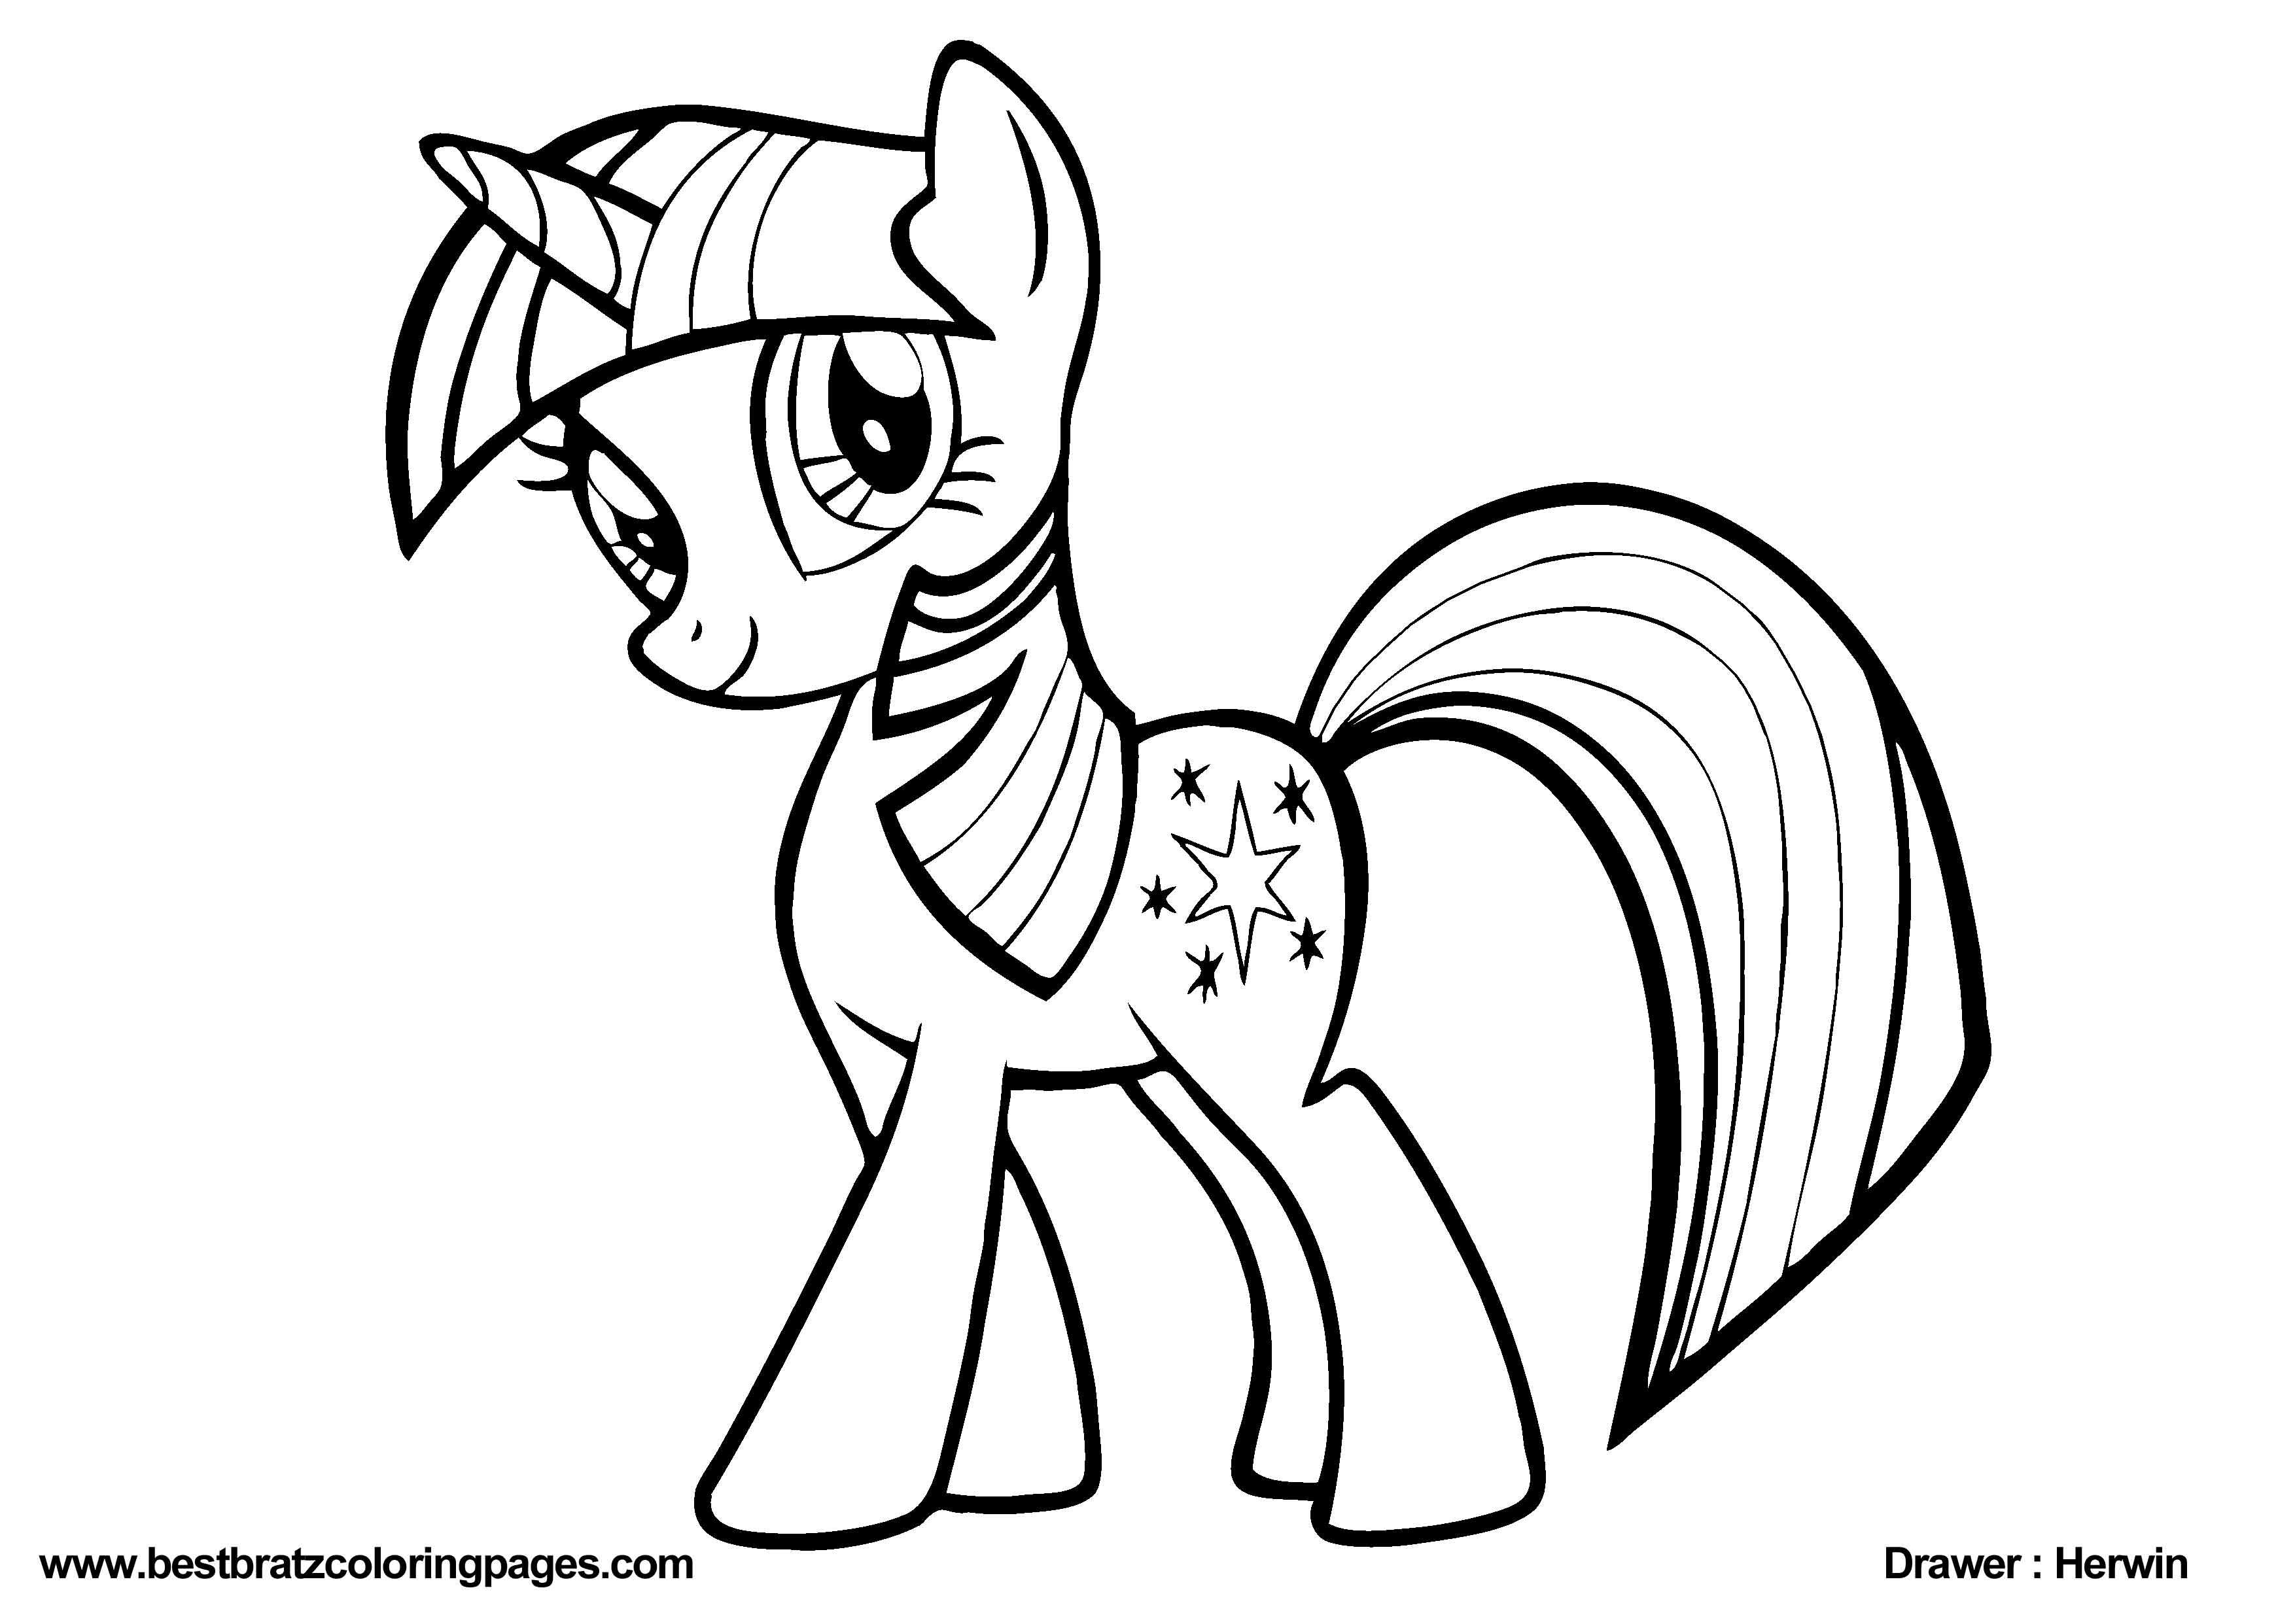 3508x2483 If You Looking For Bratz Coloring Pages, I Will Recomend This Site